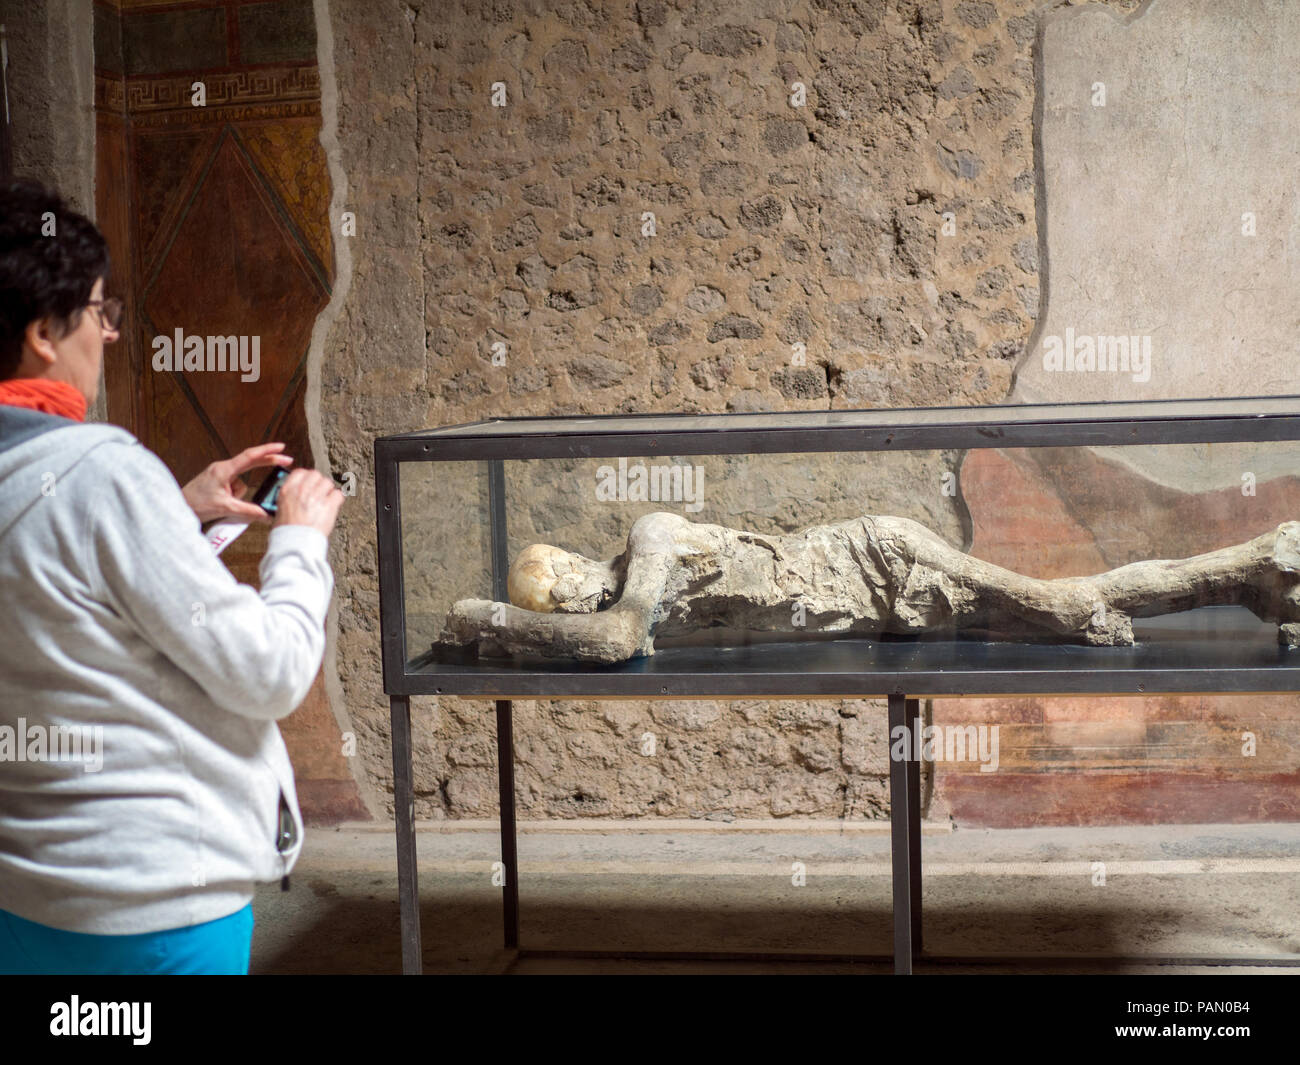 A tourist look at petrified human bodies inside the Villa of Mysteries in Pompeii, Italy. - Stock Image